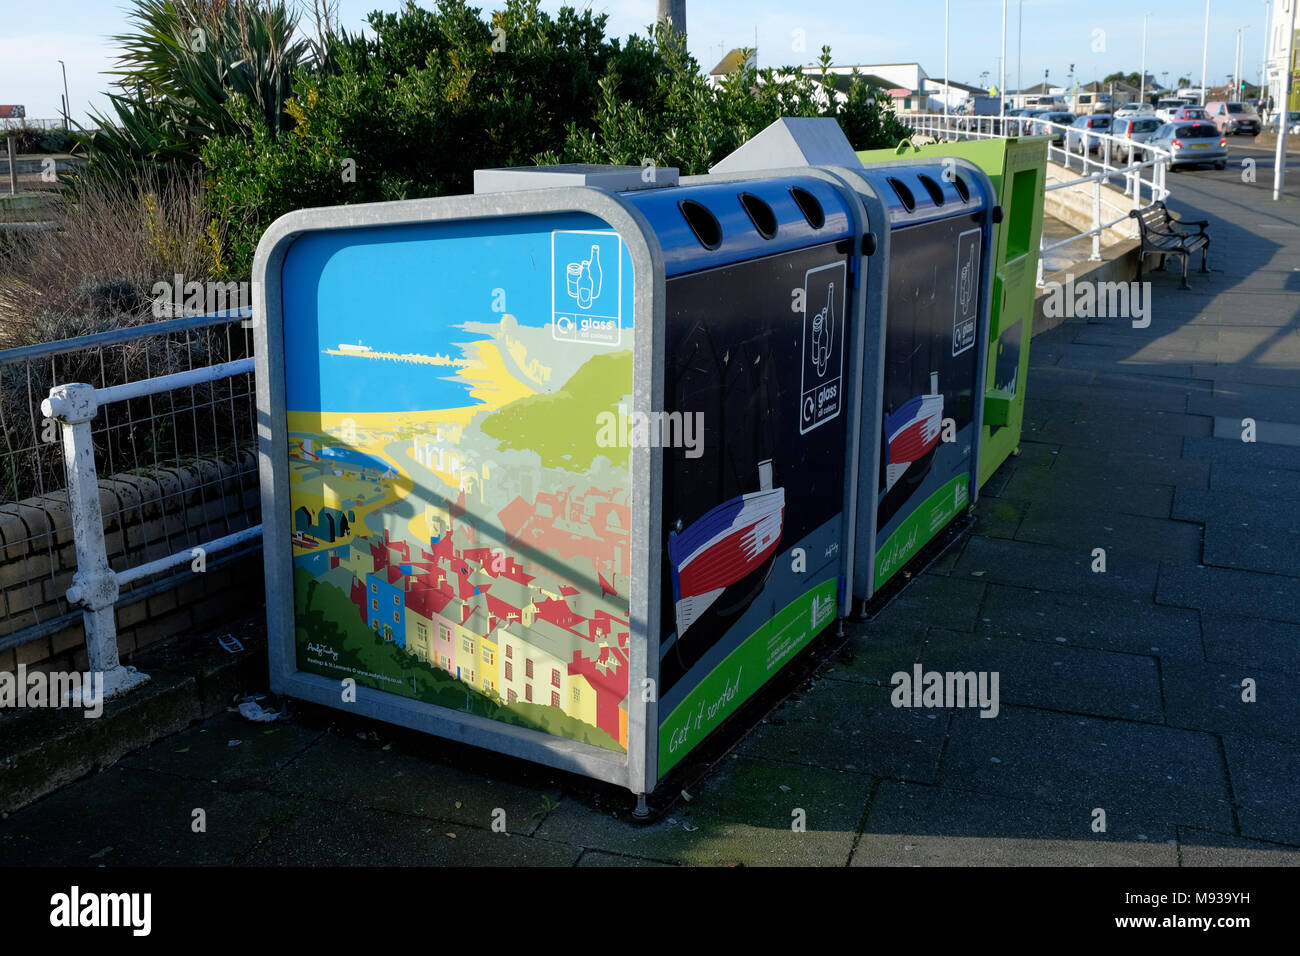 bottle bank recycling bins, depicting scenery of hastings old town - Stock Image